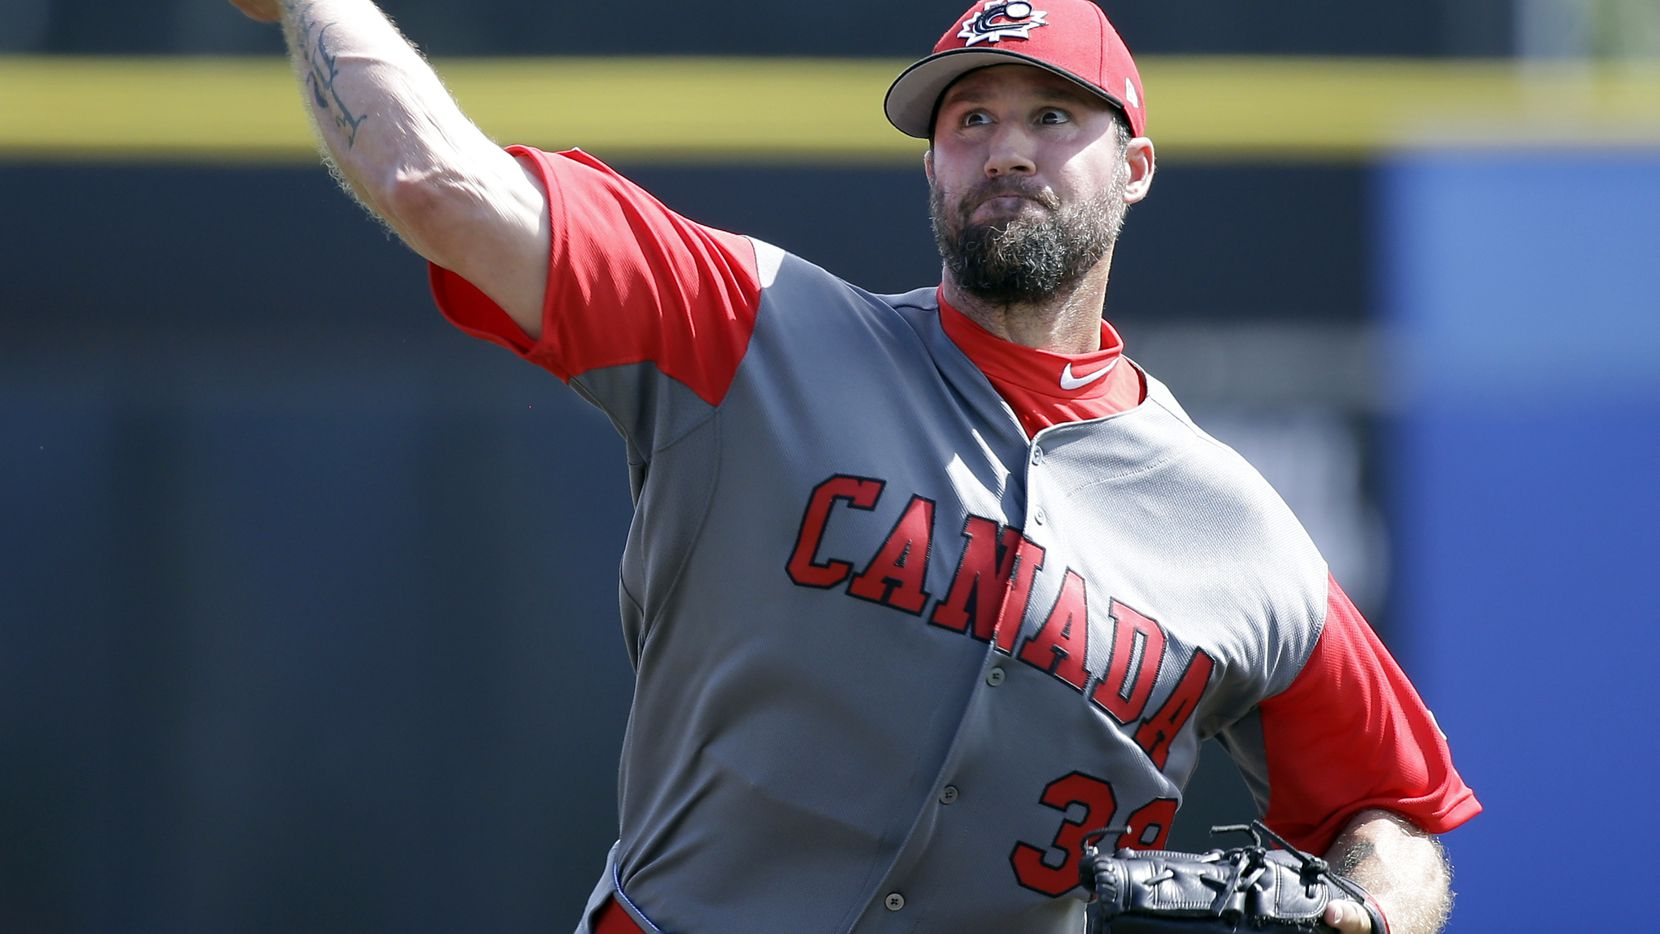 FILE - Canada pitcher Eric Gagne throws against the Toronto Blue Jays in an exhibition baseball game, Tuesday, March 7, 2017, in Dunedin, Fla. (AP Photo/John Raoux)